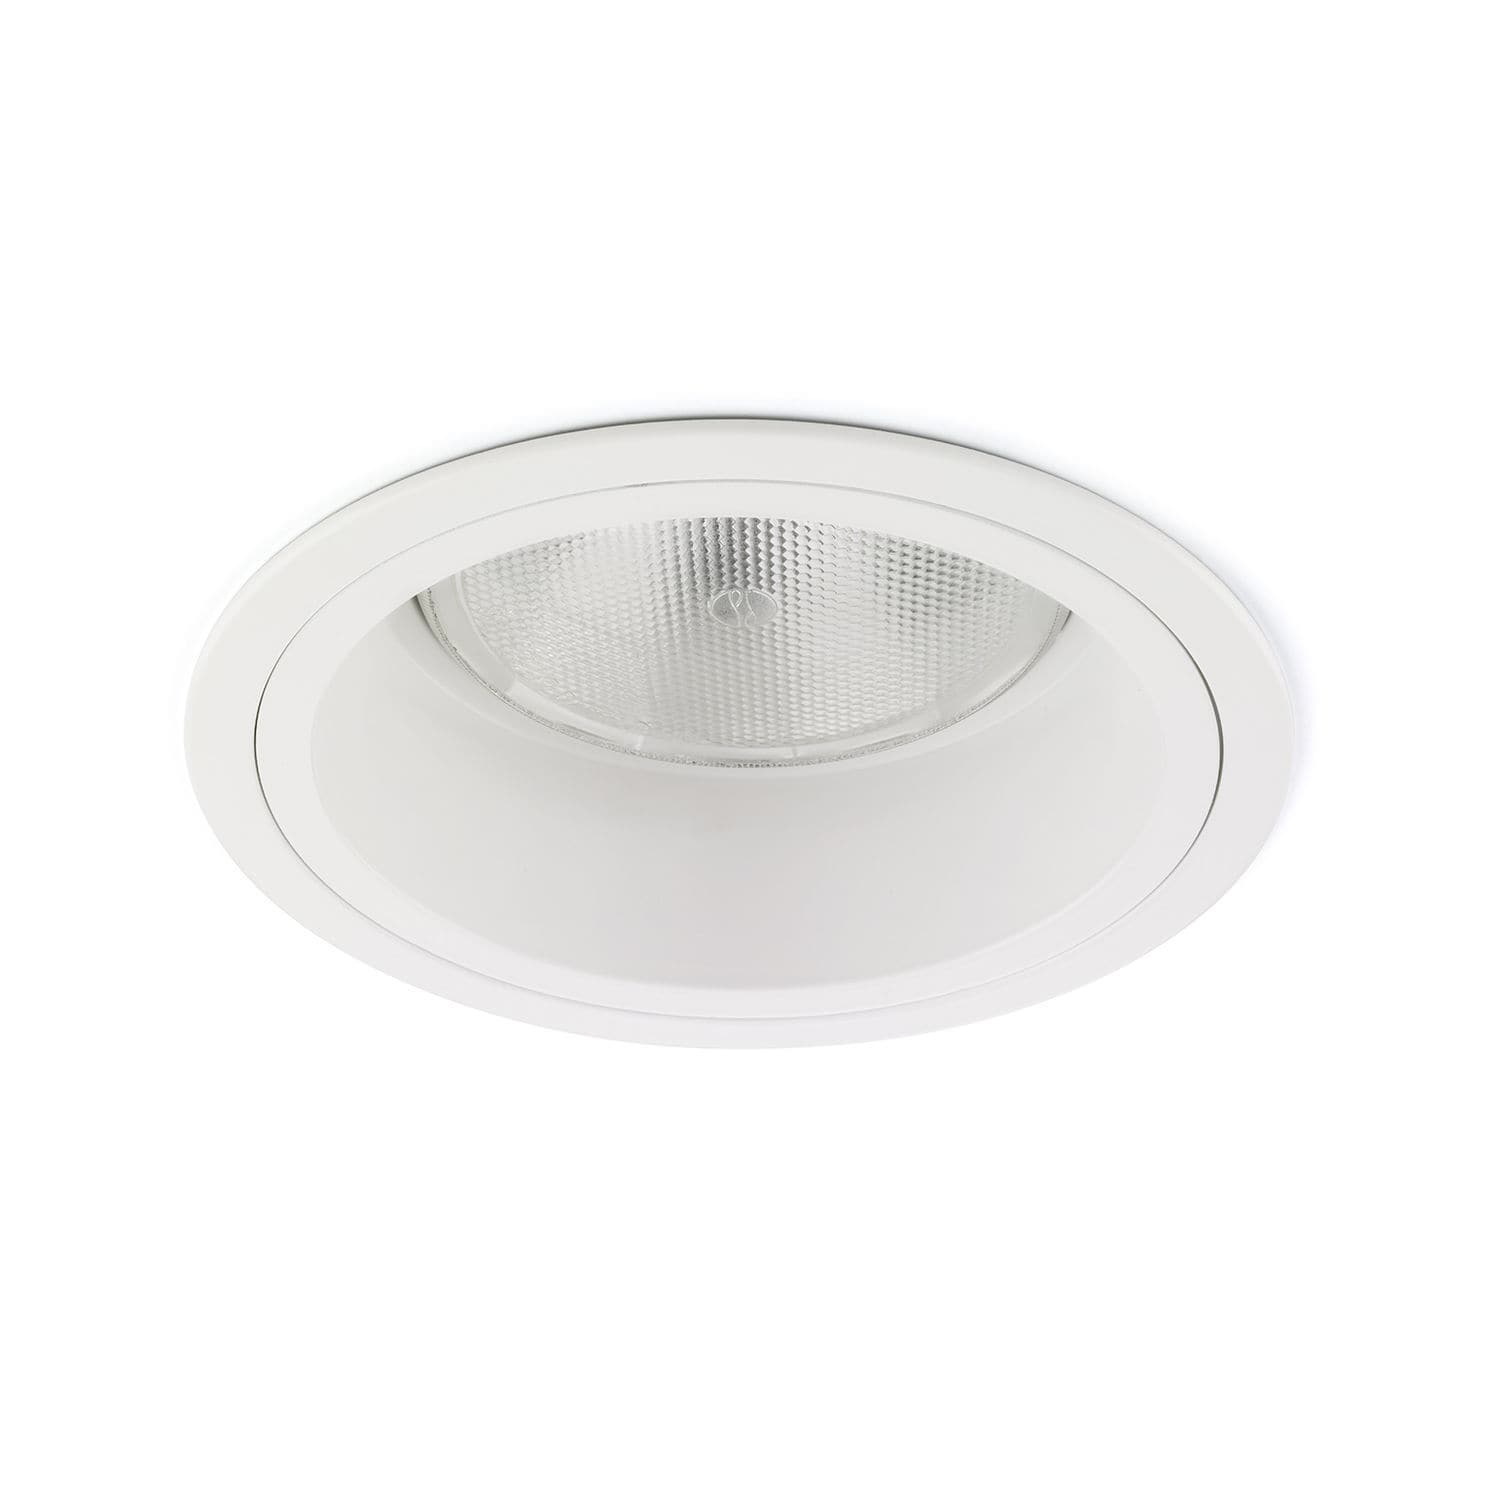 Recessed downlight led halogen hid unisio reggiani recessed downlight led halogen hid unisio aloadofball Images